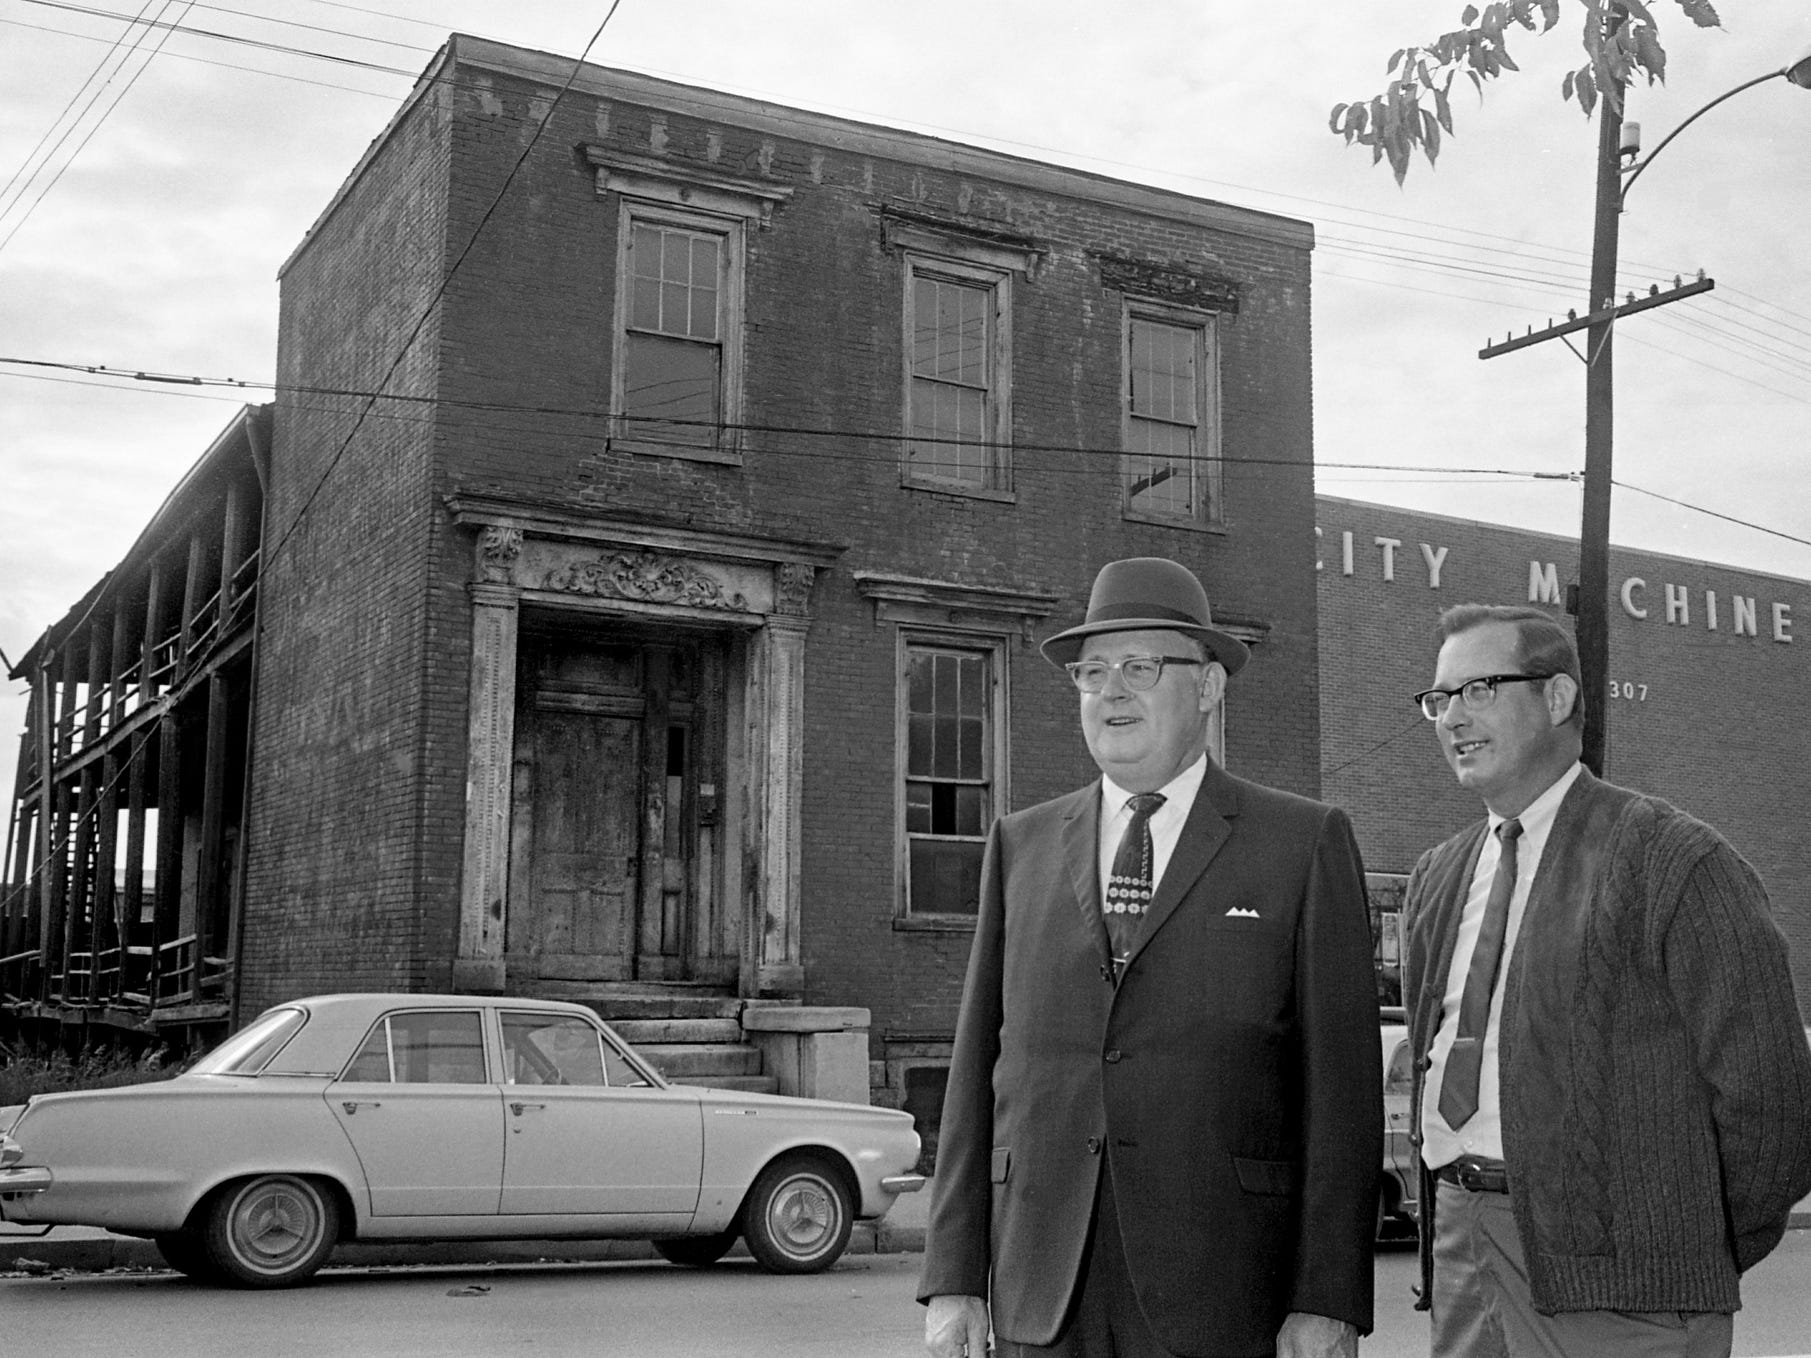 Ward Lovell Sr., left, and Ward Lovell Jr., president and vice president of Rock City Machinery Co., stand outside the house adjacent to their business Oct. 22, 1968, that they purchased for expansion. The house has not been occupied for several years and is said to have been used as a hospital during the Civil War. The building will be razed for the firm's expansion plans.